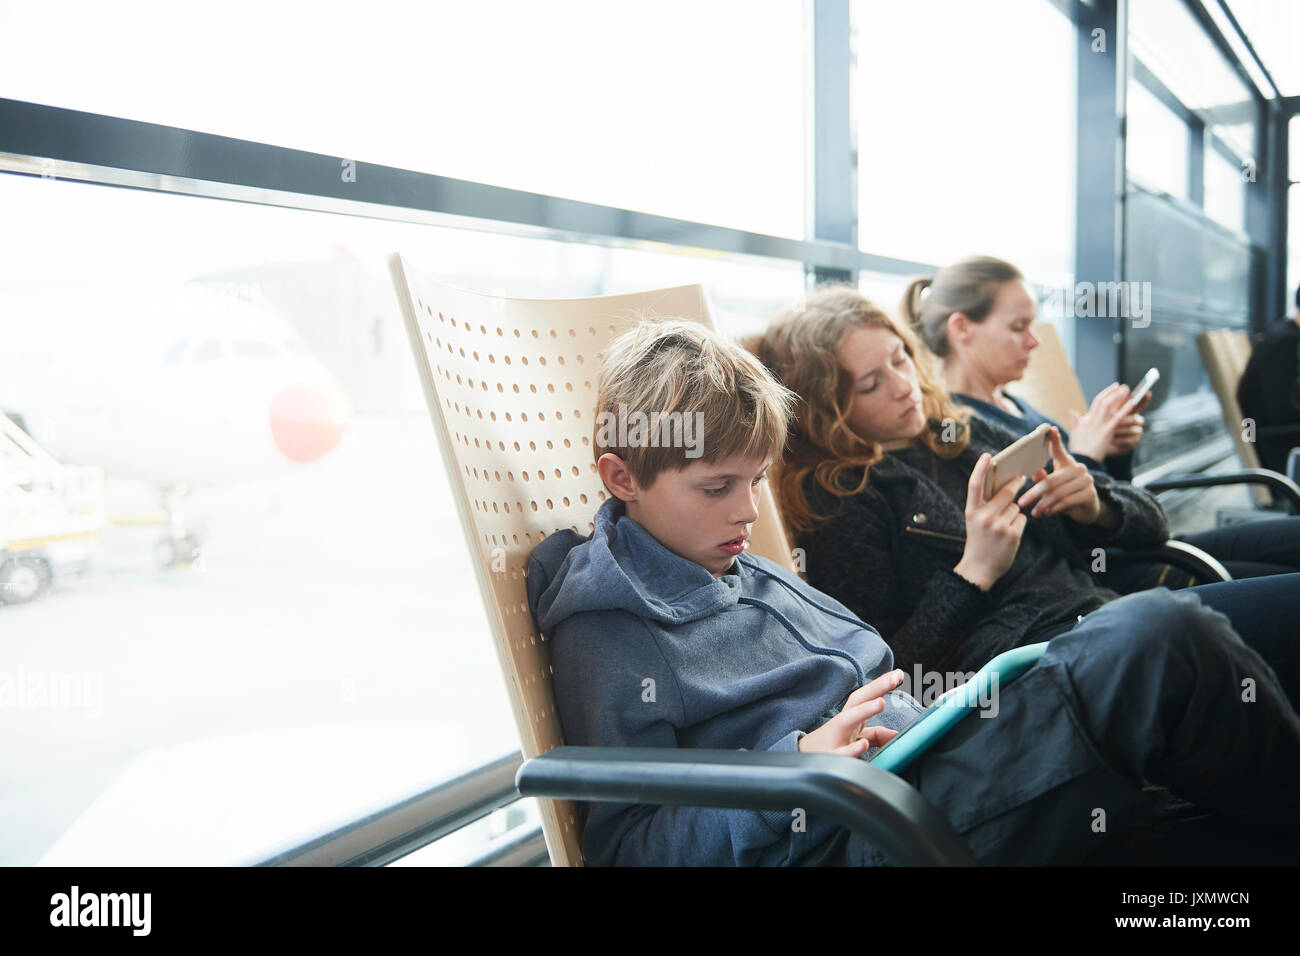 Family at airport on way to holiday, Copenhagen, Denmark - Stock Image